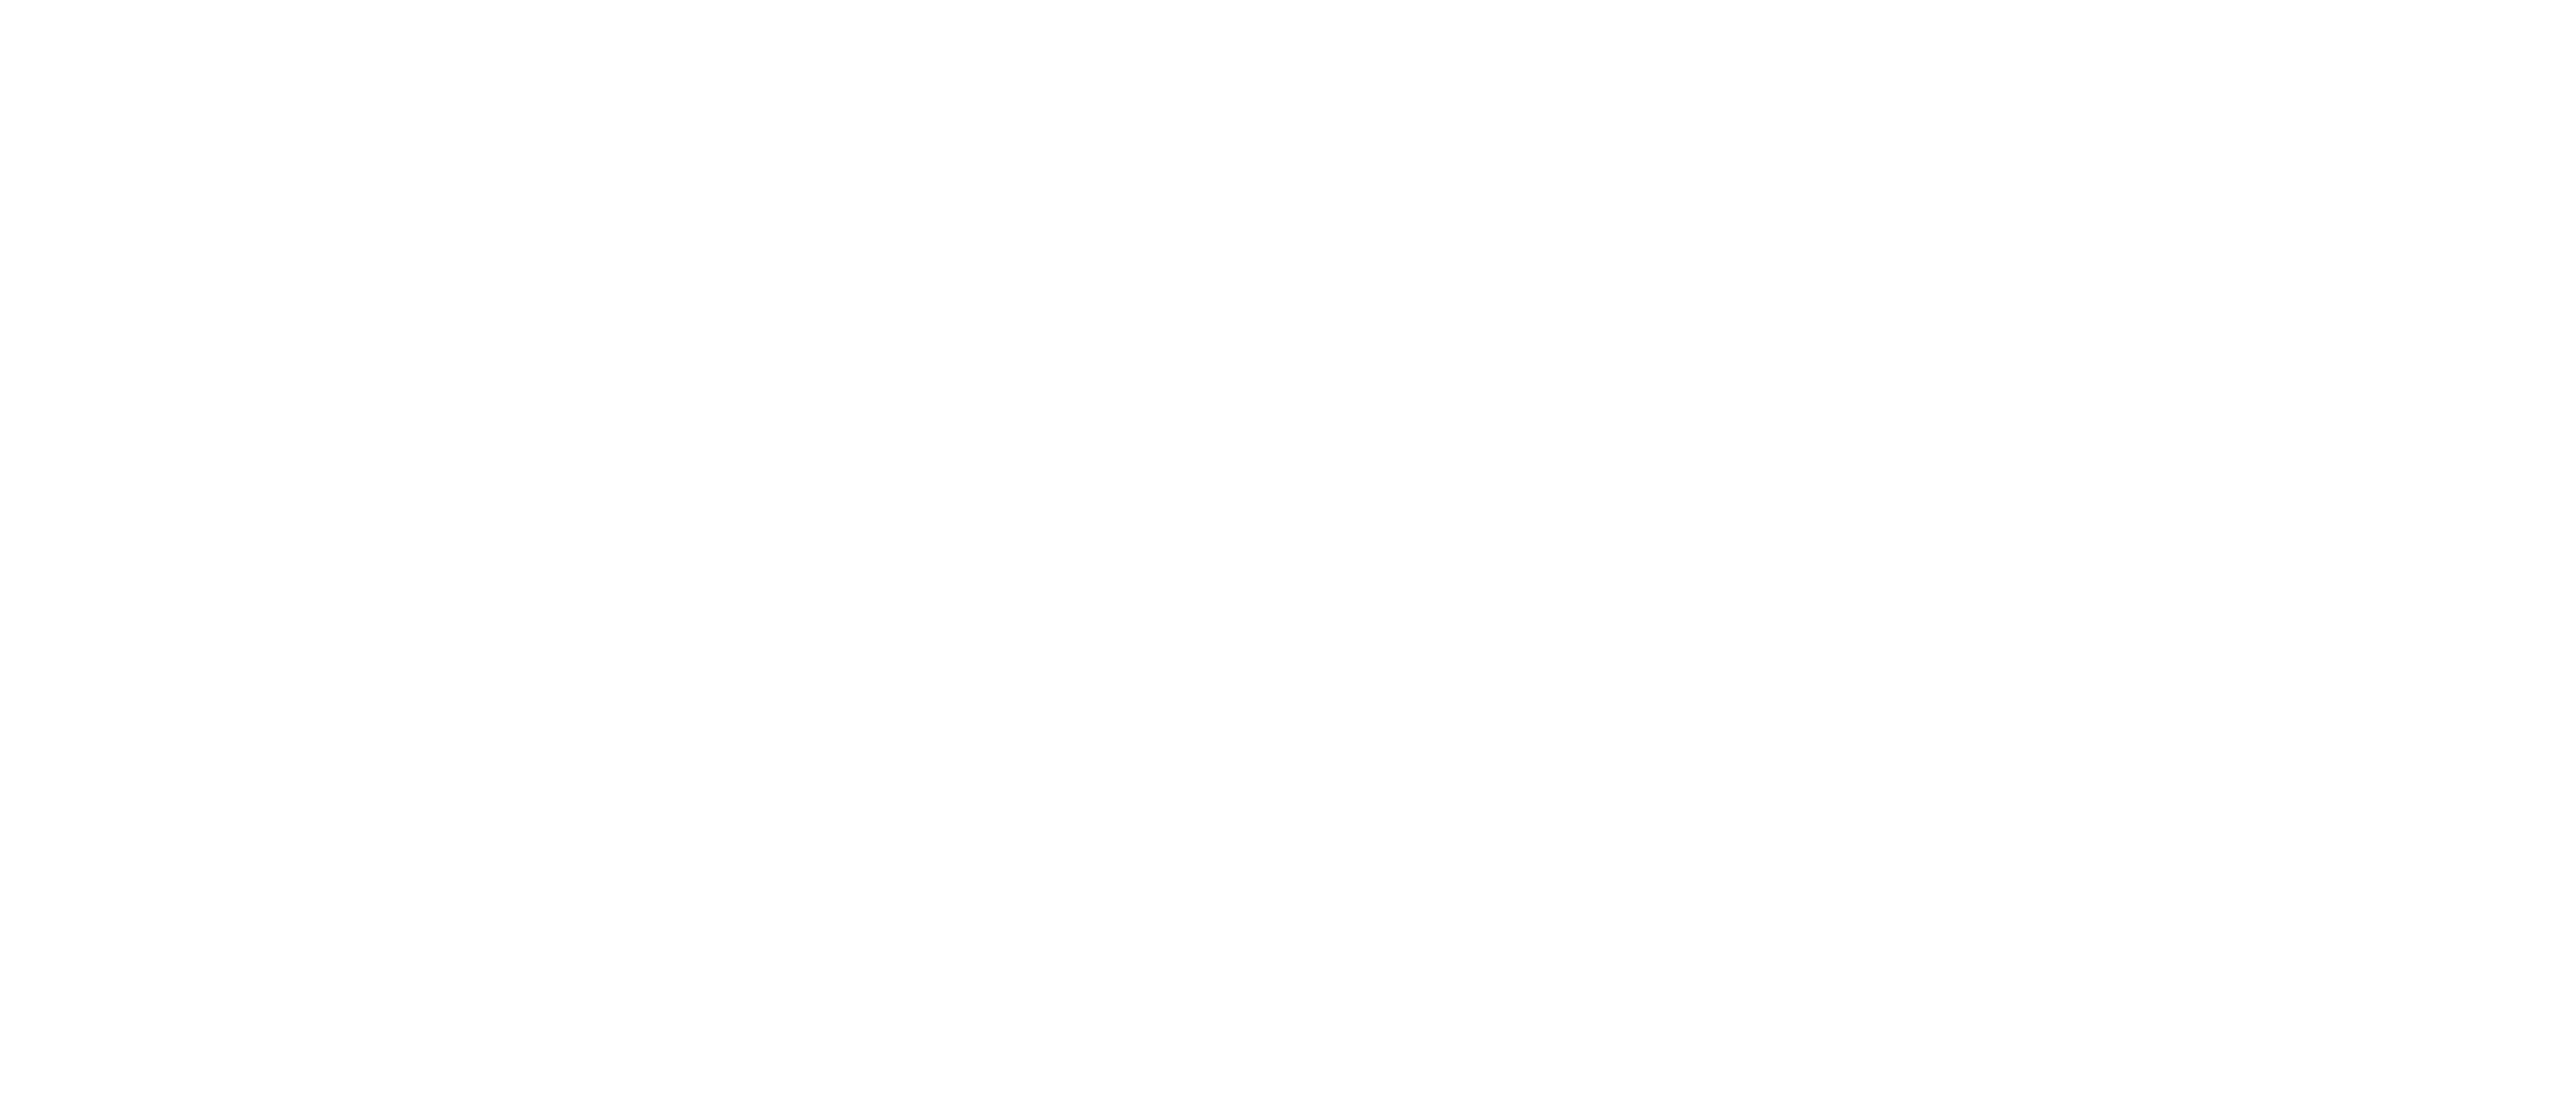 Ashburton Long Run Iron